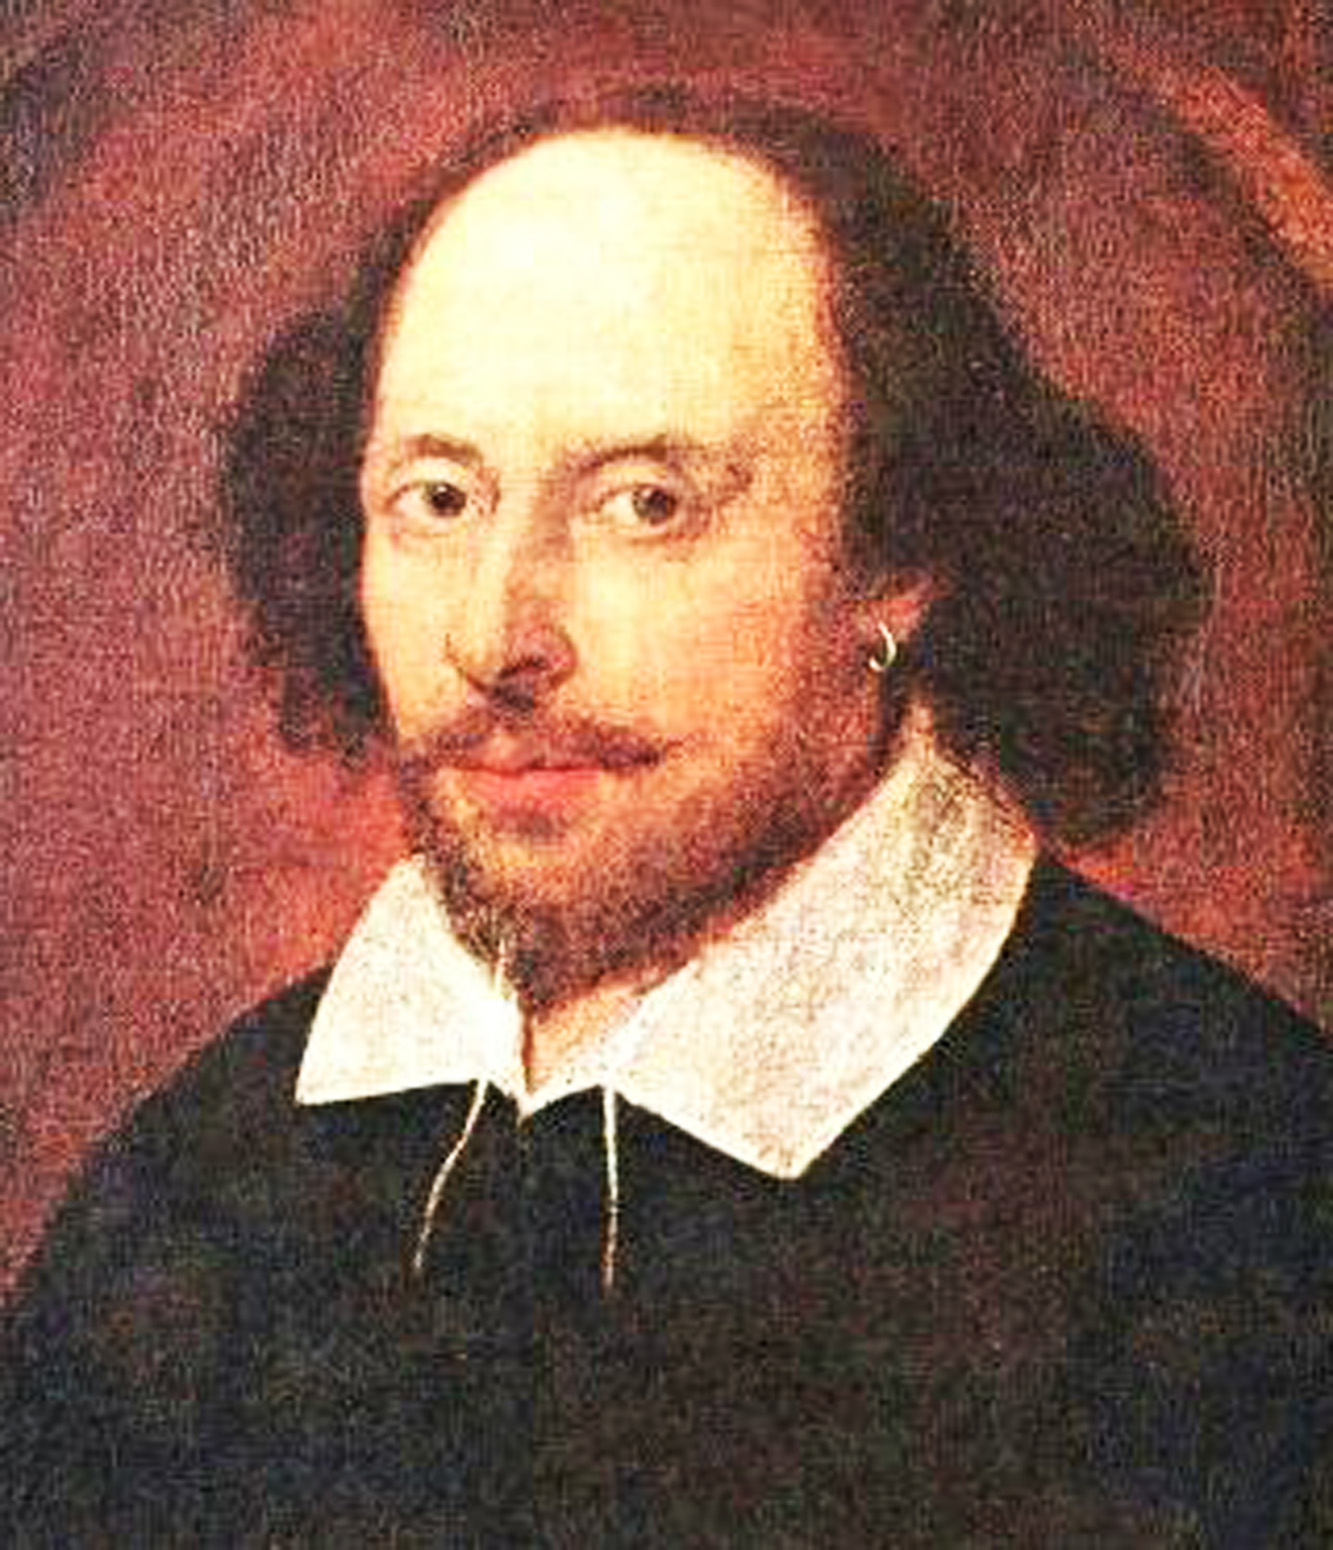 william shakespear William shakespeare is renowned as the england's greatest playwright and poet.